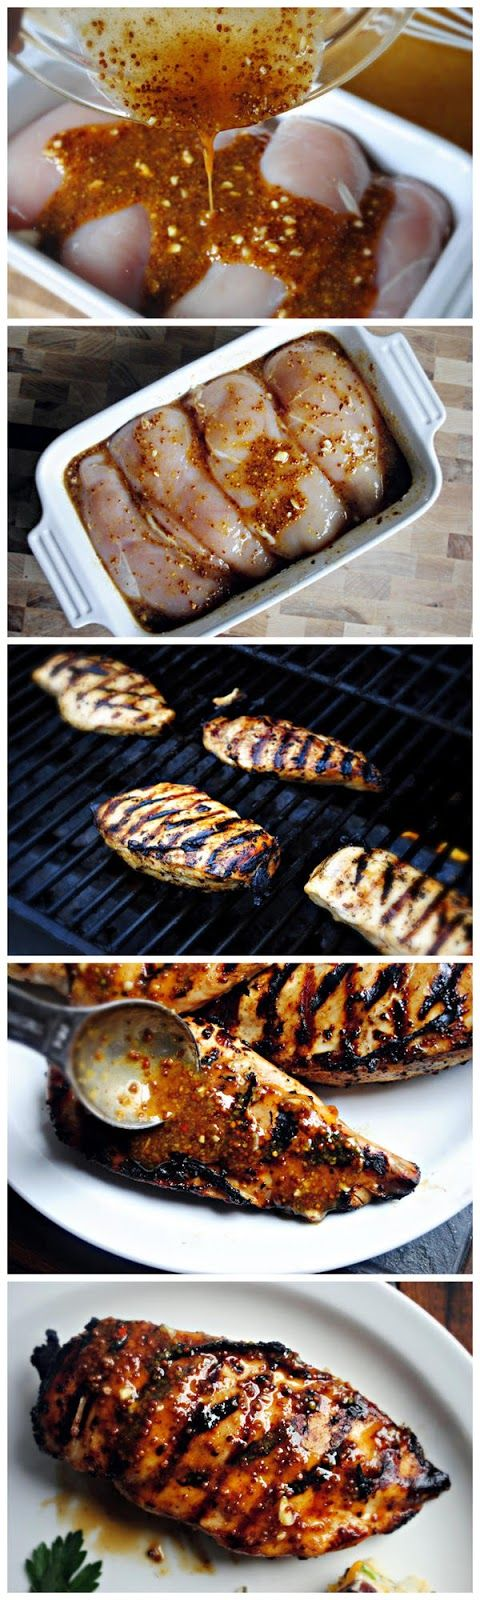 Grilled Honey Mustard Chicken by simplyscratch #Chicken #Honey #Mustard #Easy #Healthy